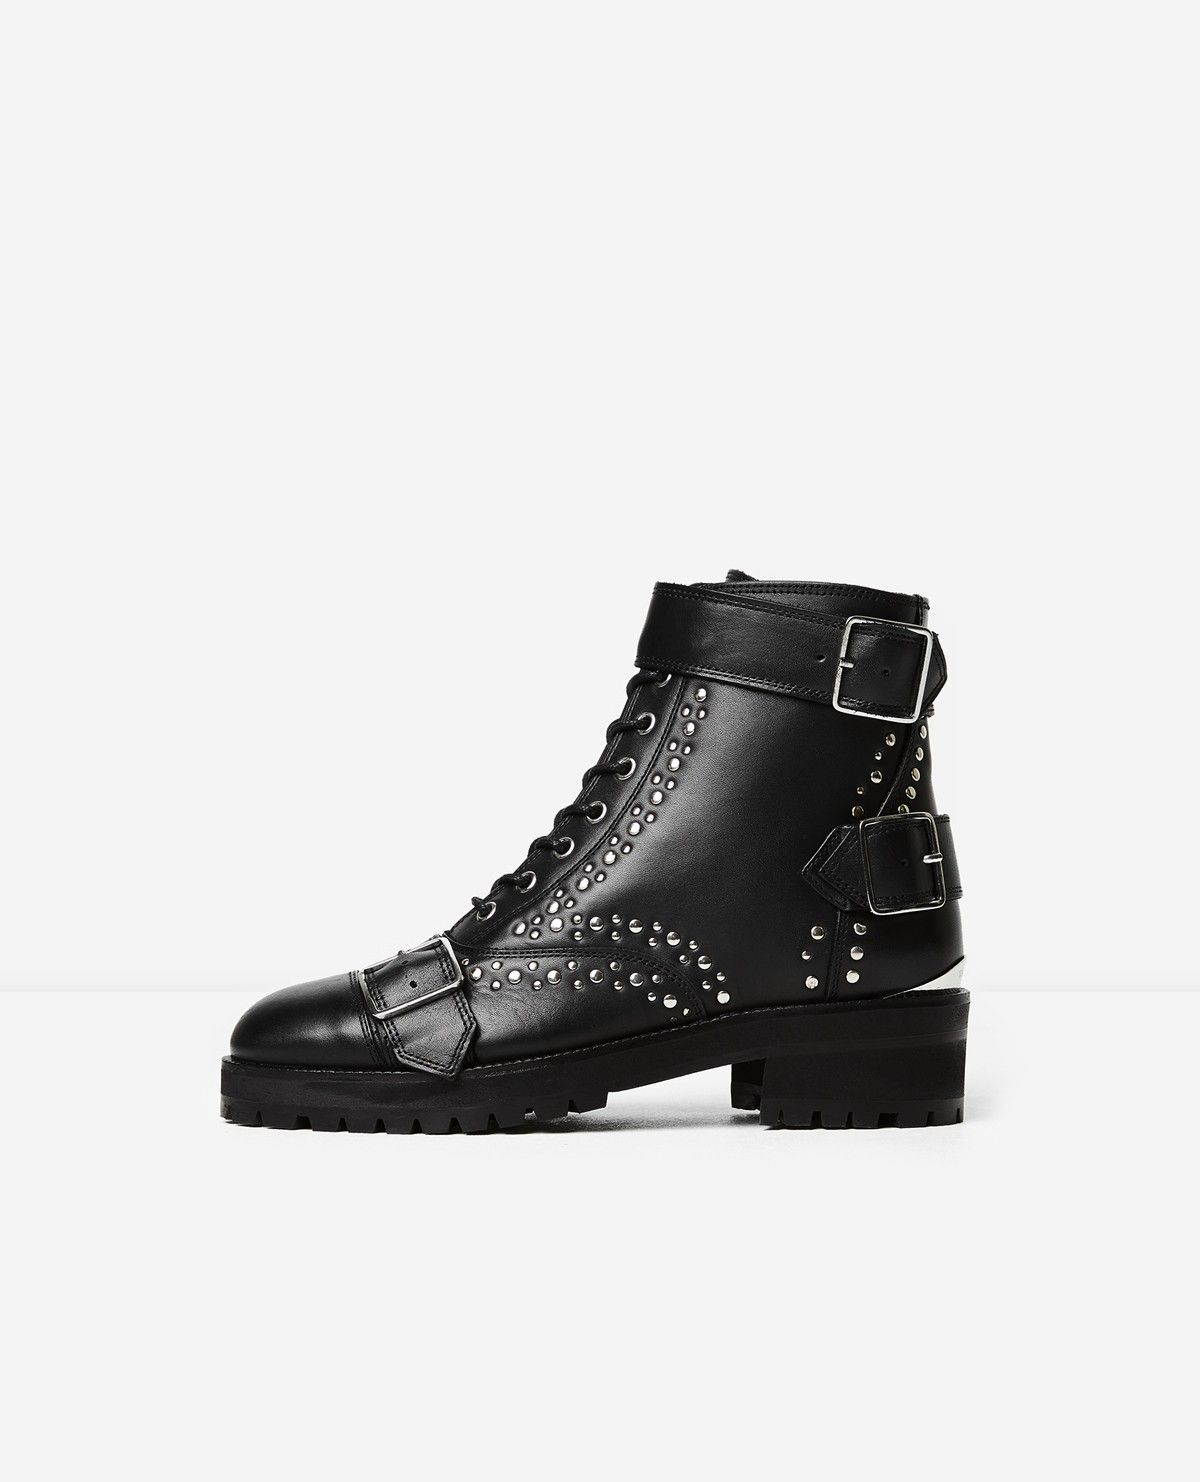 The Kooples BOOTS LONG SHOELACES - Lace-up boots - black uFiPkIp